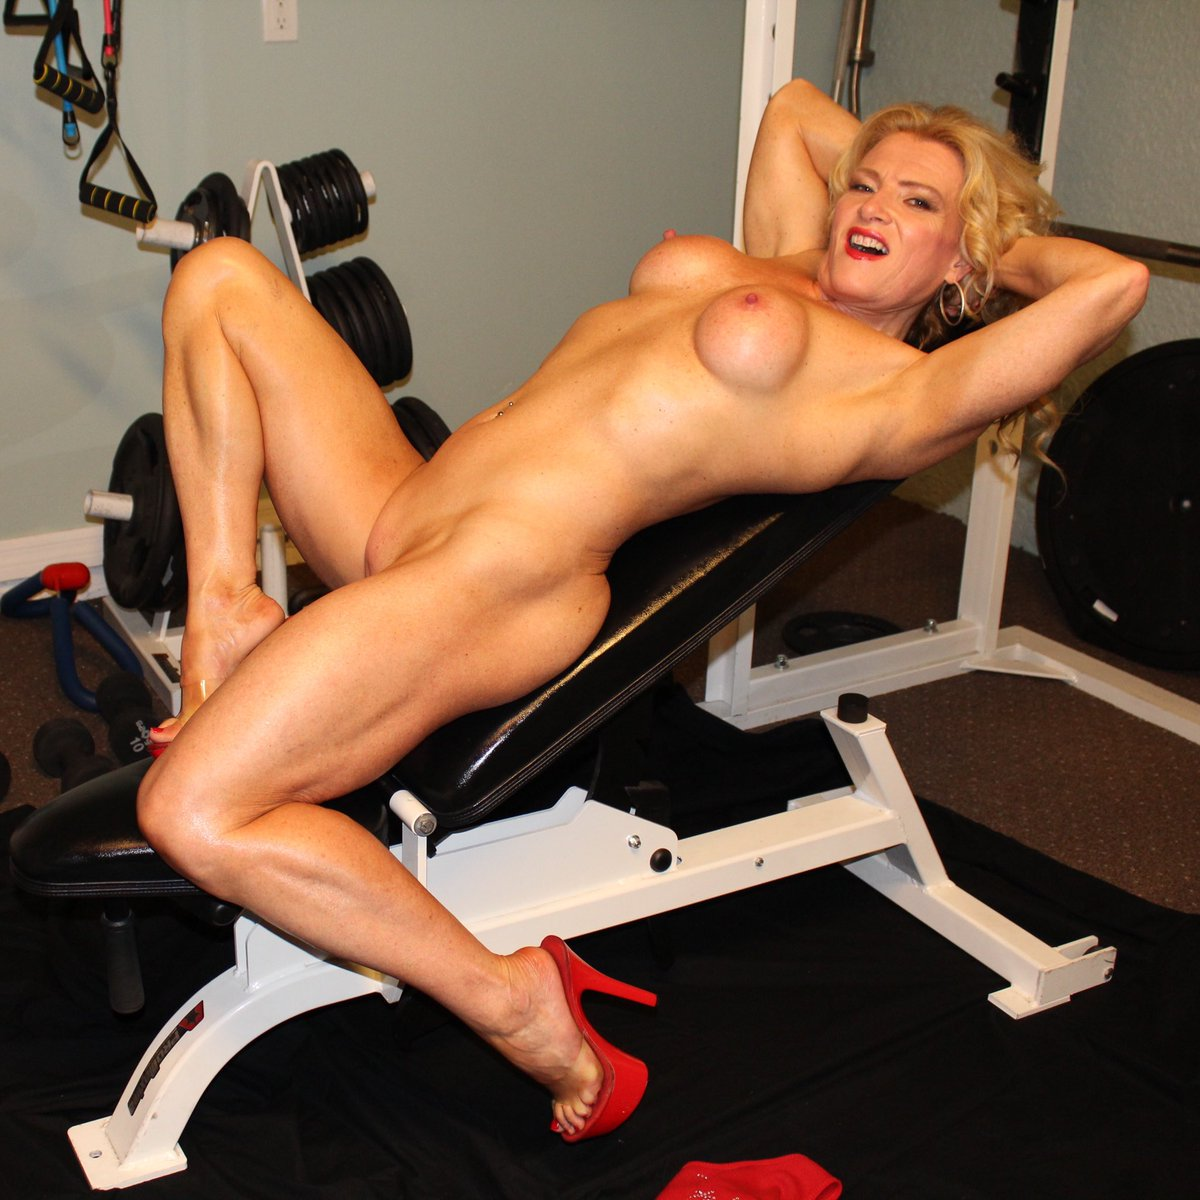 #FlashbackFriday one of my fav pics from a few years ago. It's #MandyInTheMorning #naked #milf #gymmotivation